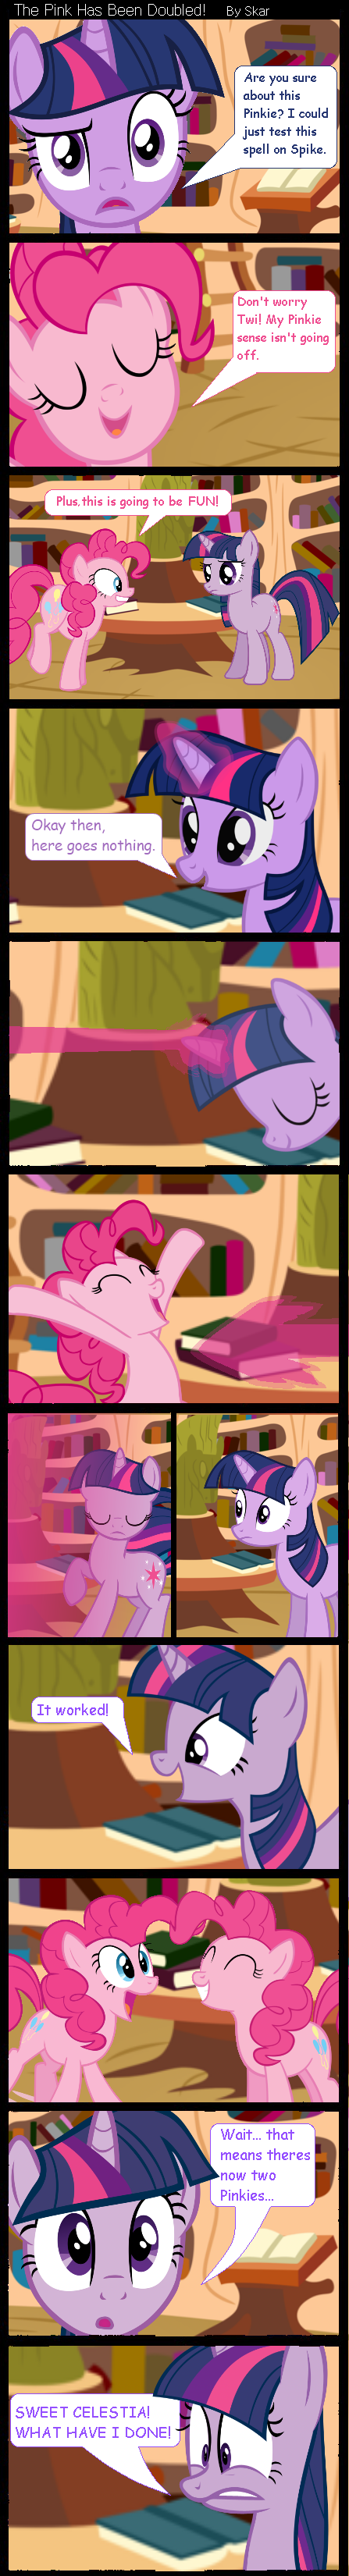 The Pink Has Been Doubled! by DeviantDalton